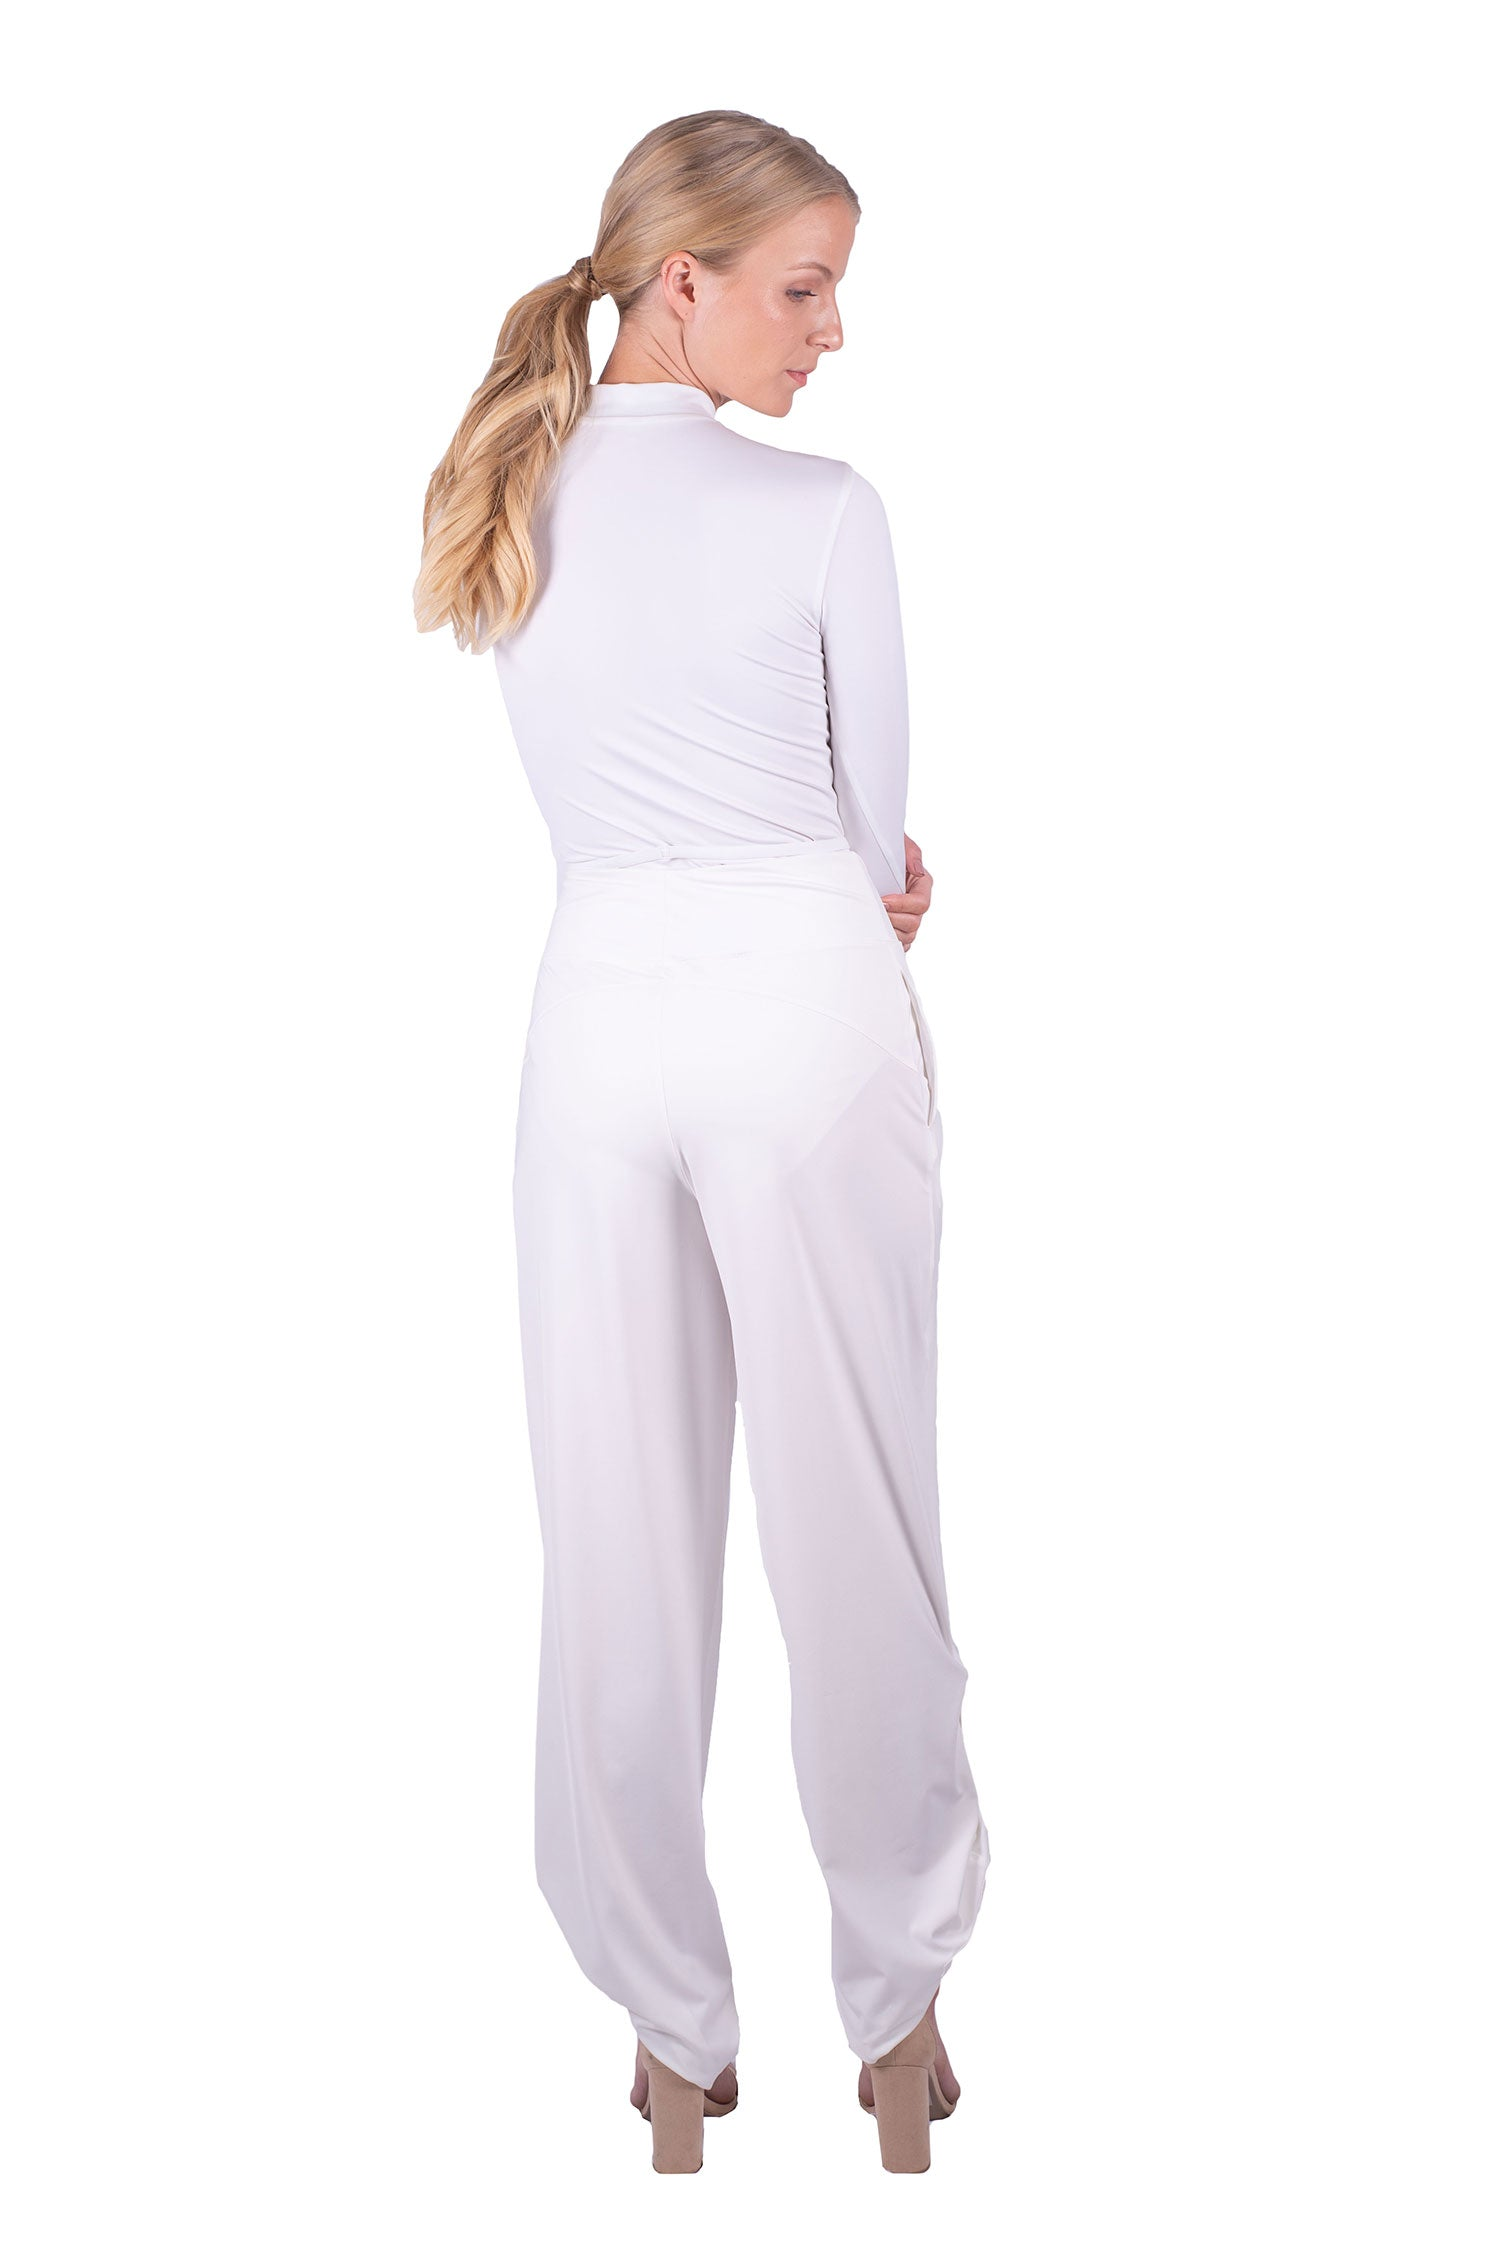 Katherine Porto Pants - Luminora